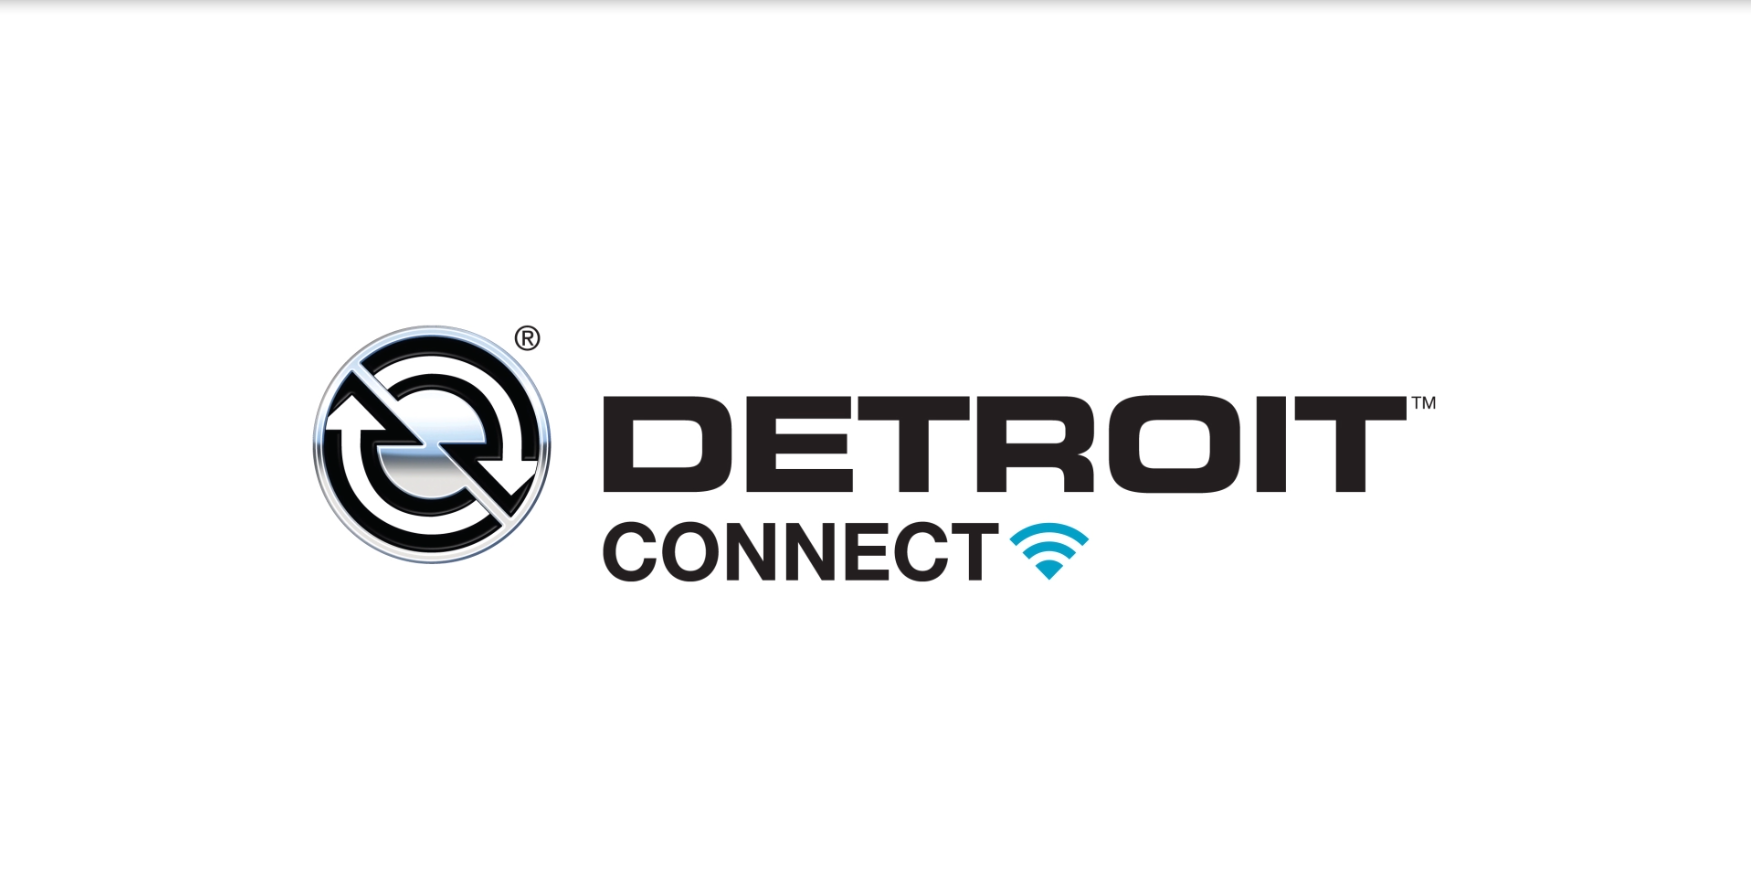 Detroit Connect and How It Helps Your Fleet